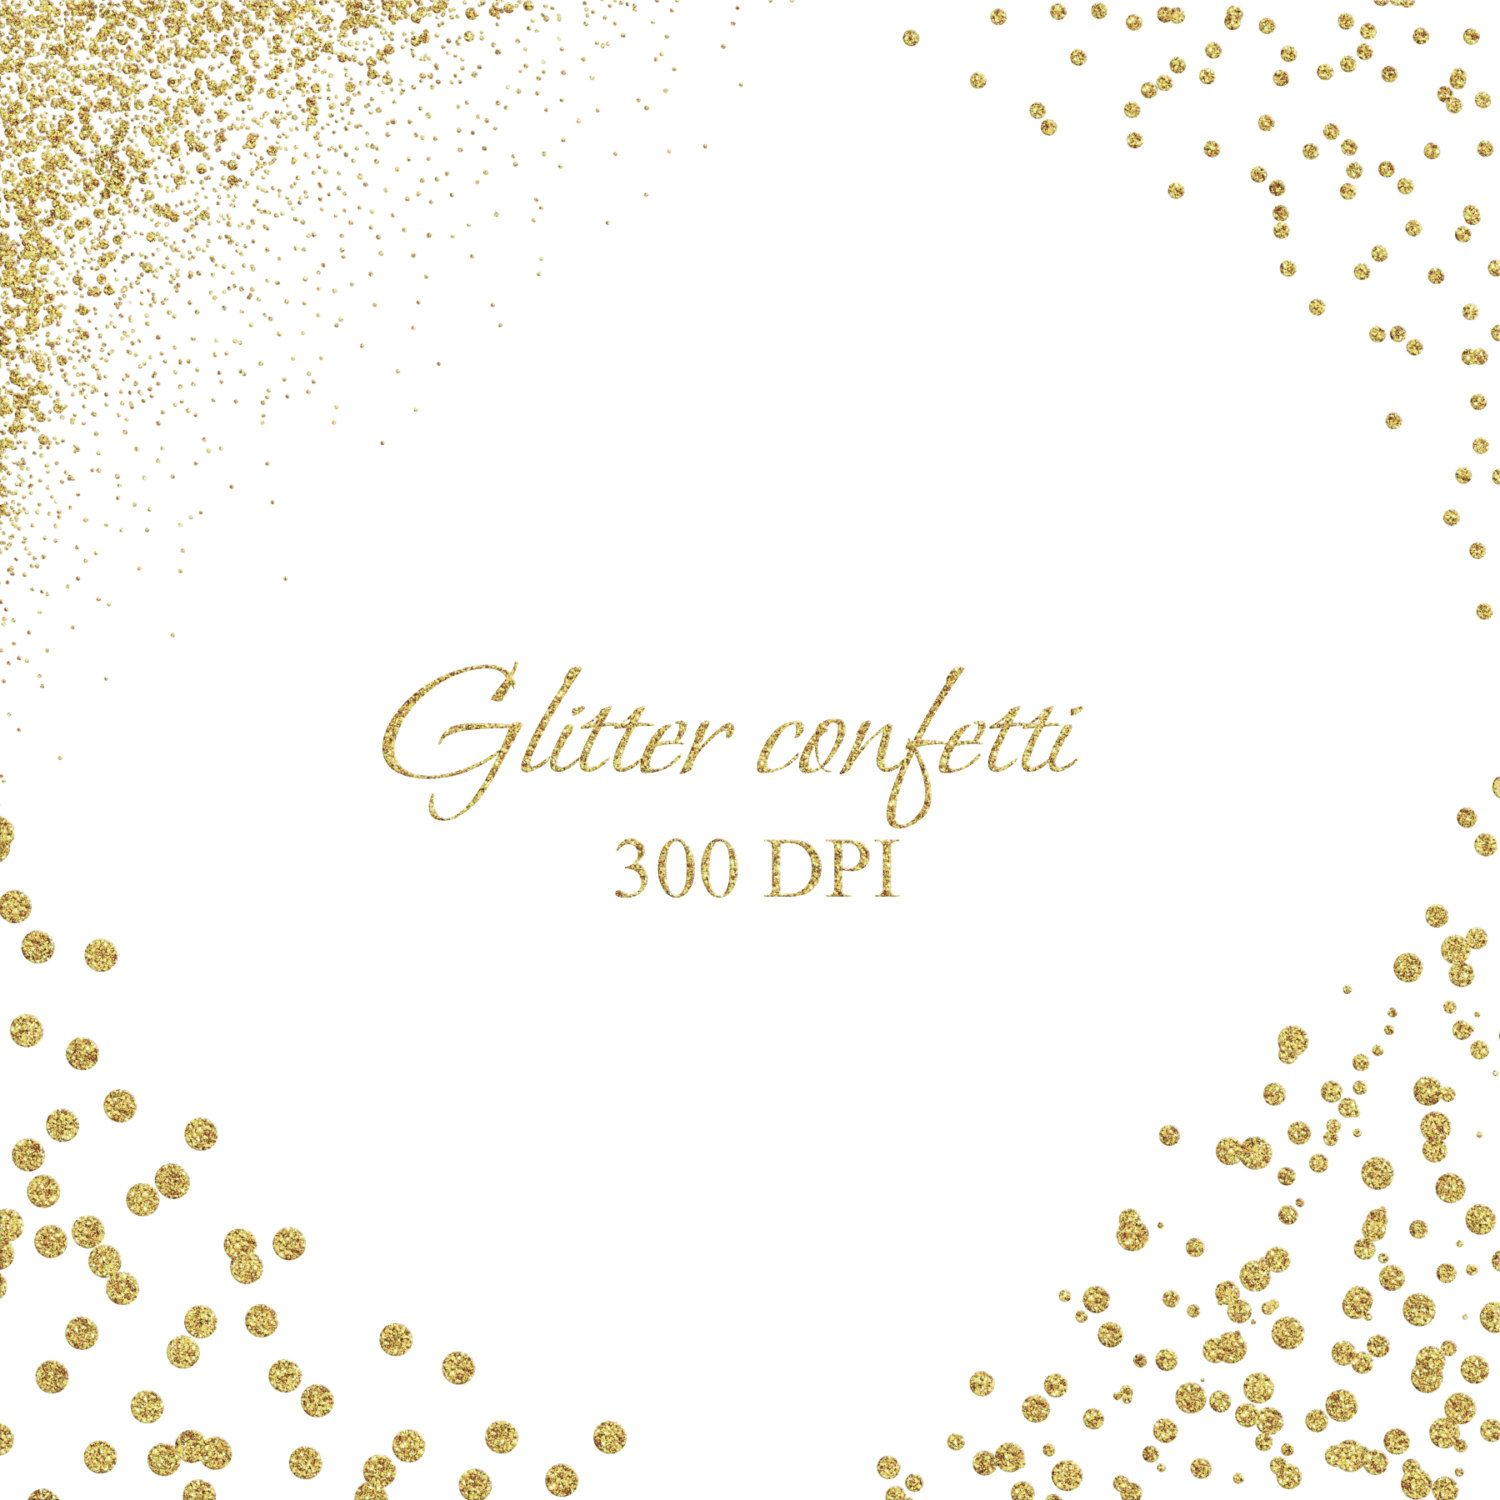 Gold Confetti Borders And Corner Digital Glitter Clipart Polka Dot Overlays Instant Download